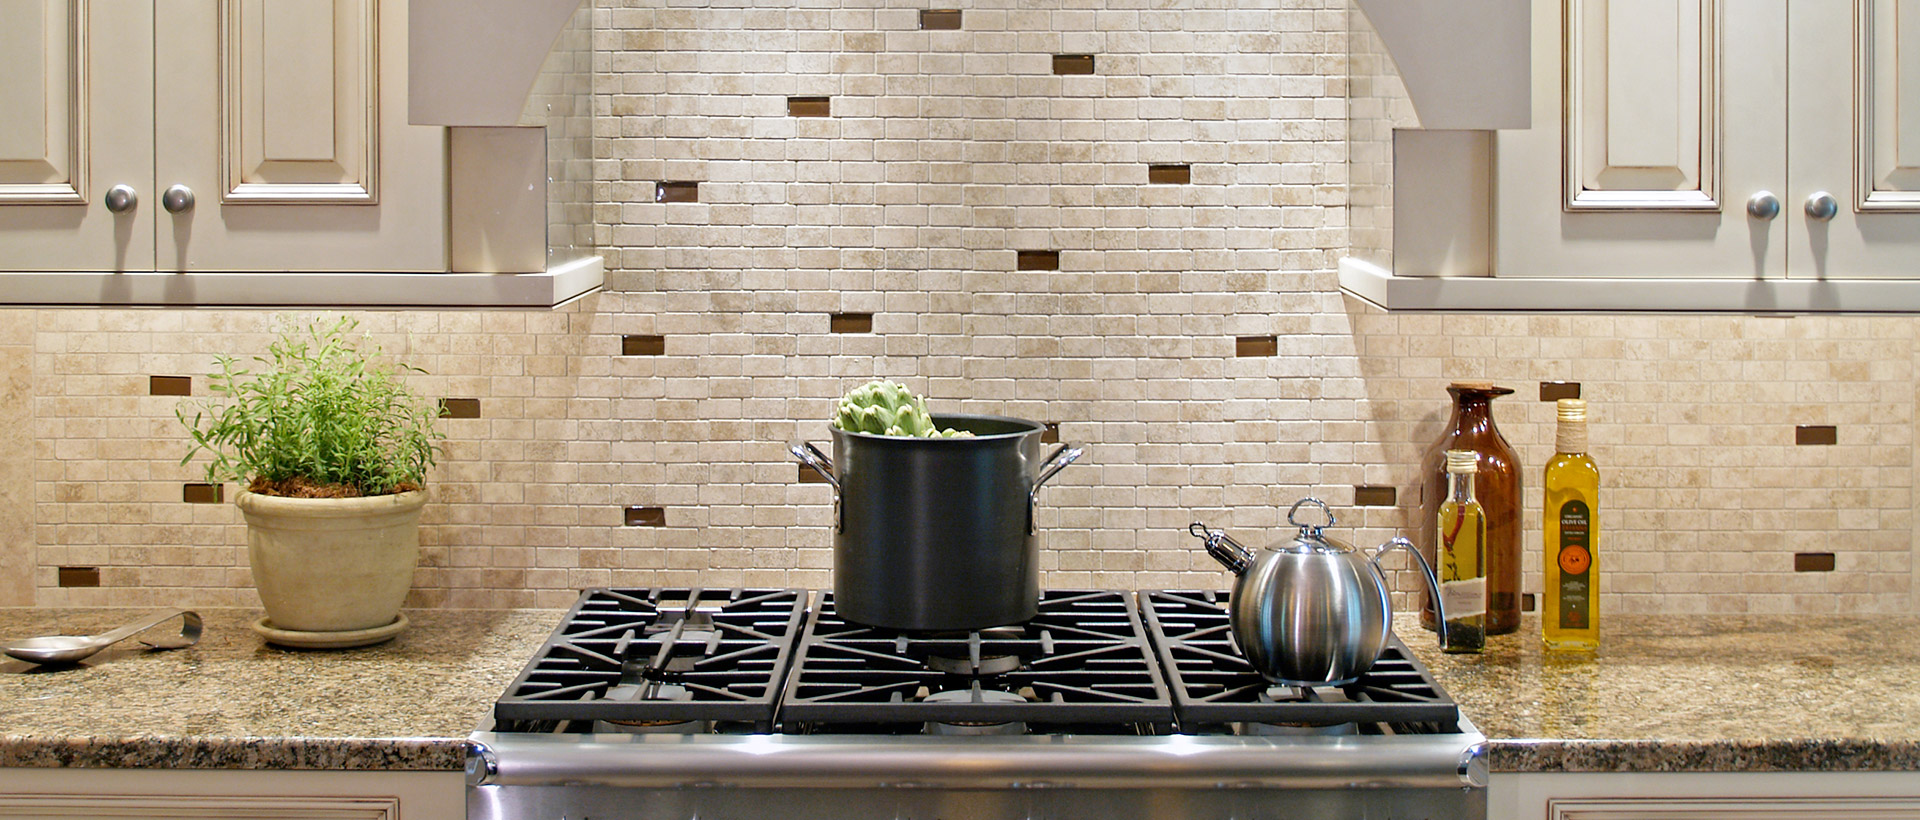 Kitchen ceramic tile backsplash